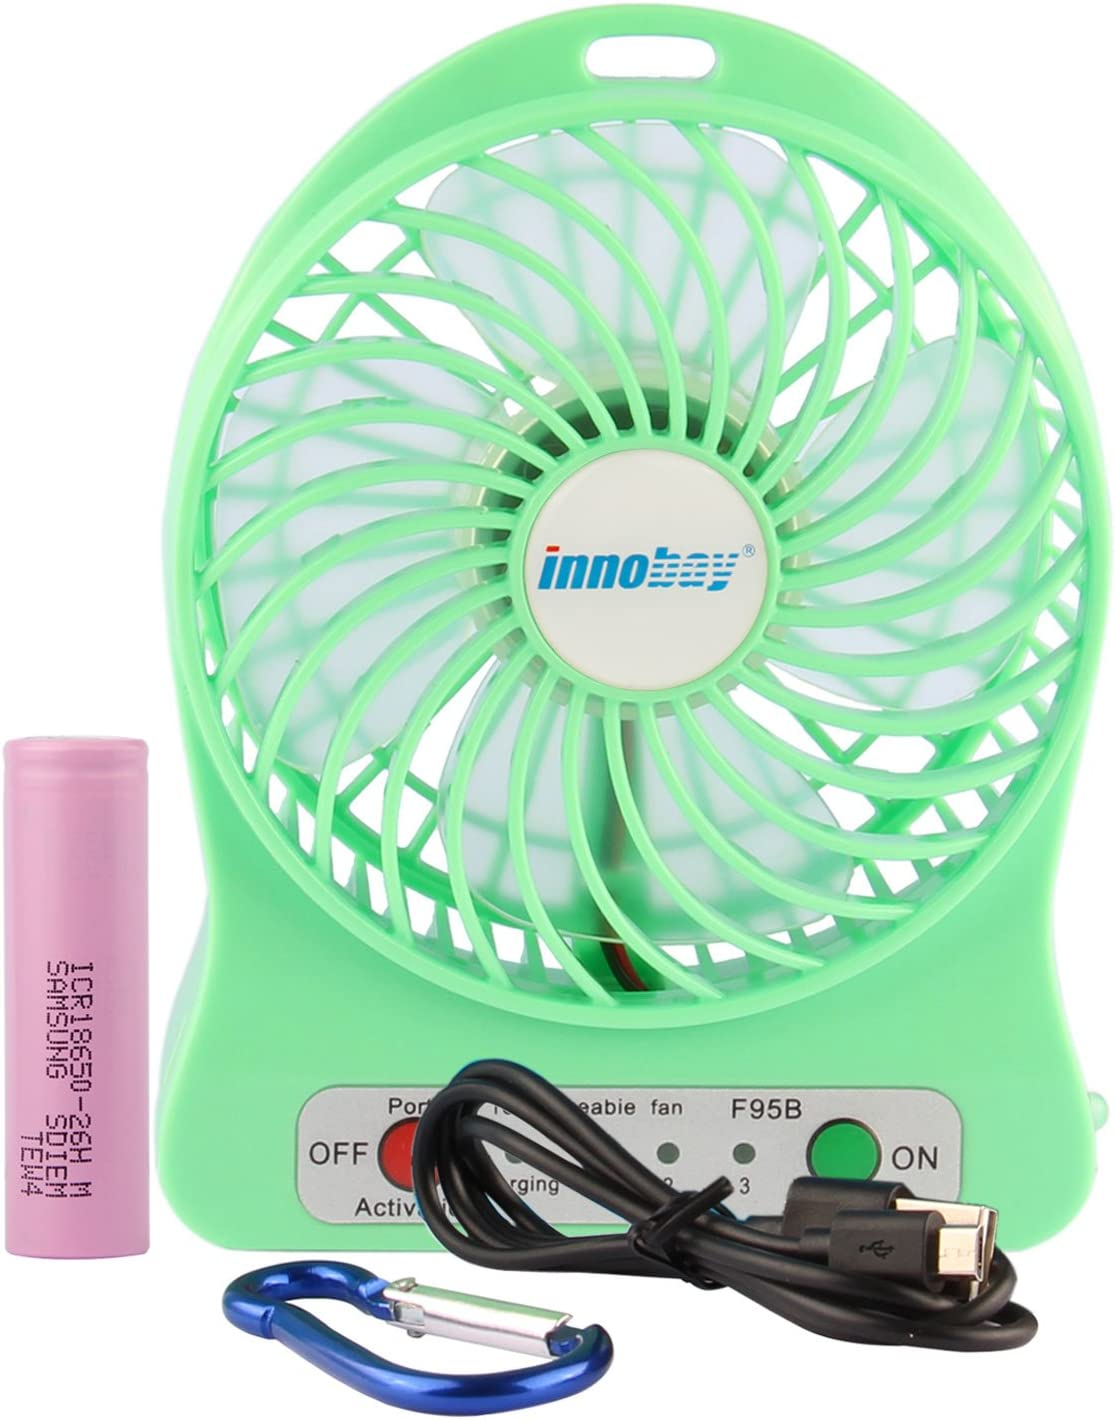 innobay 4-inch Personal Desktop USB Fan Powered Rechargeable Lithium Battery, 3 Speeds Setting, w/Led Lamp (Green)